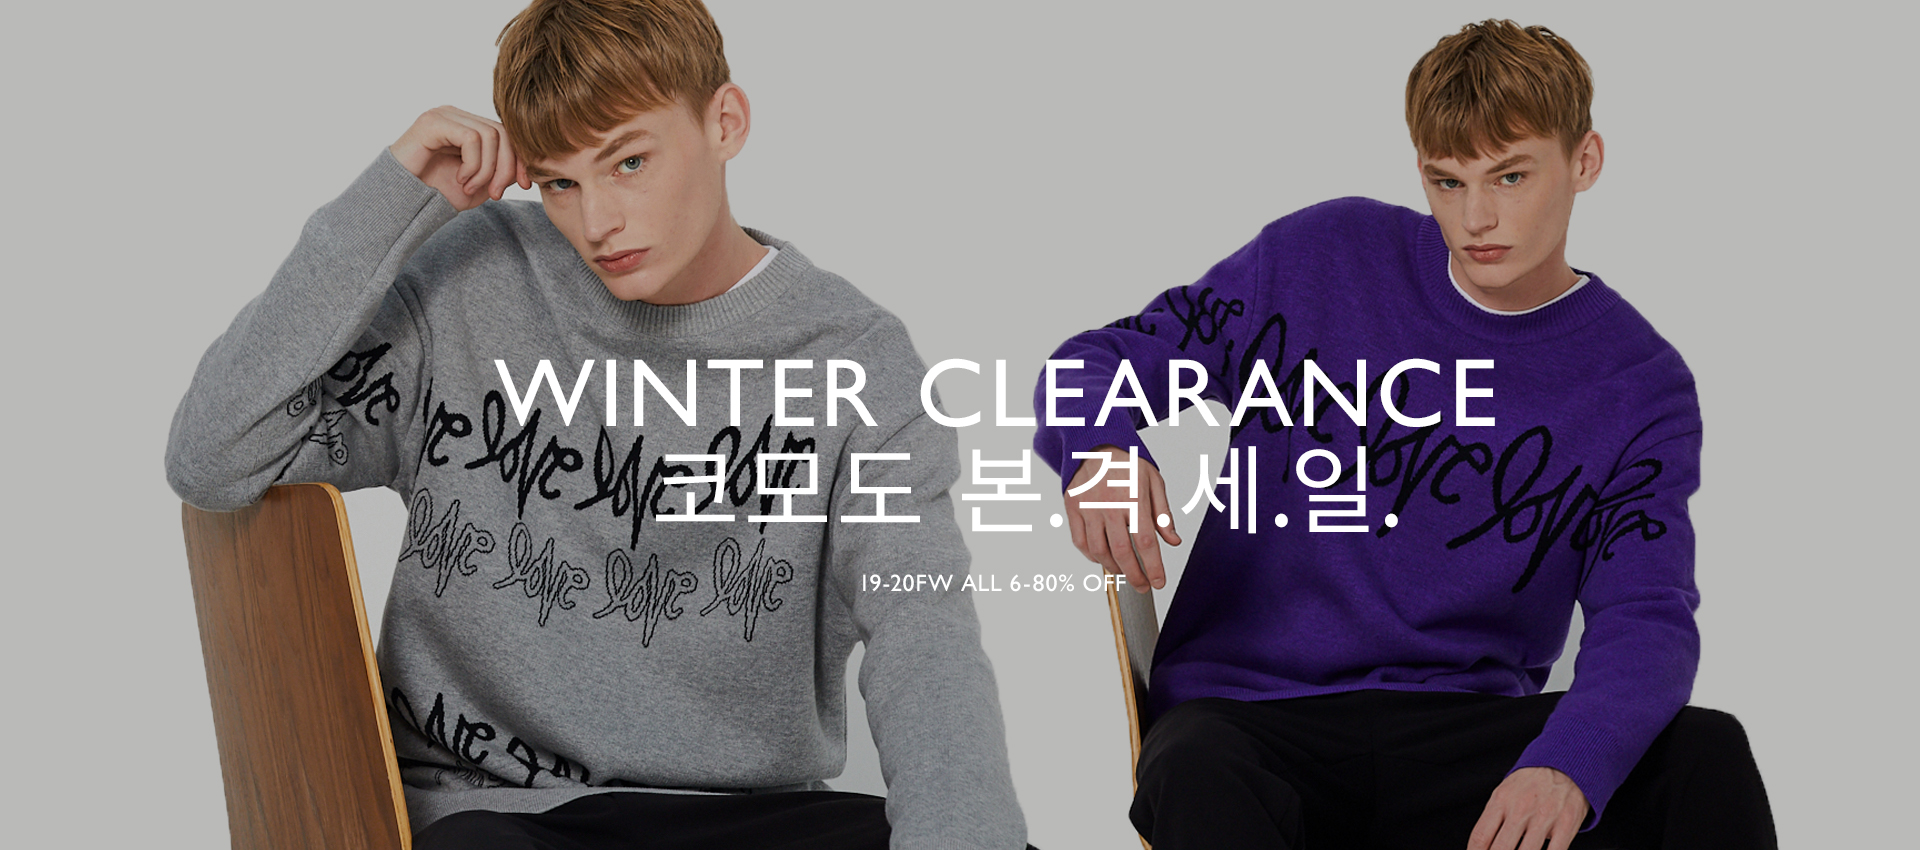 WINTER CLEARANCE